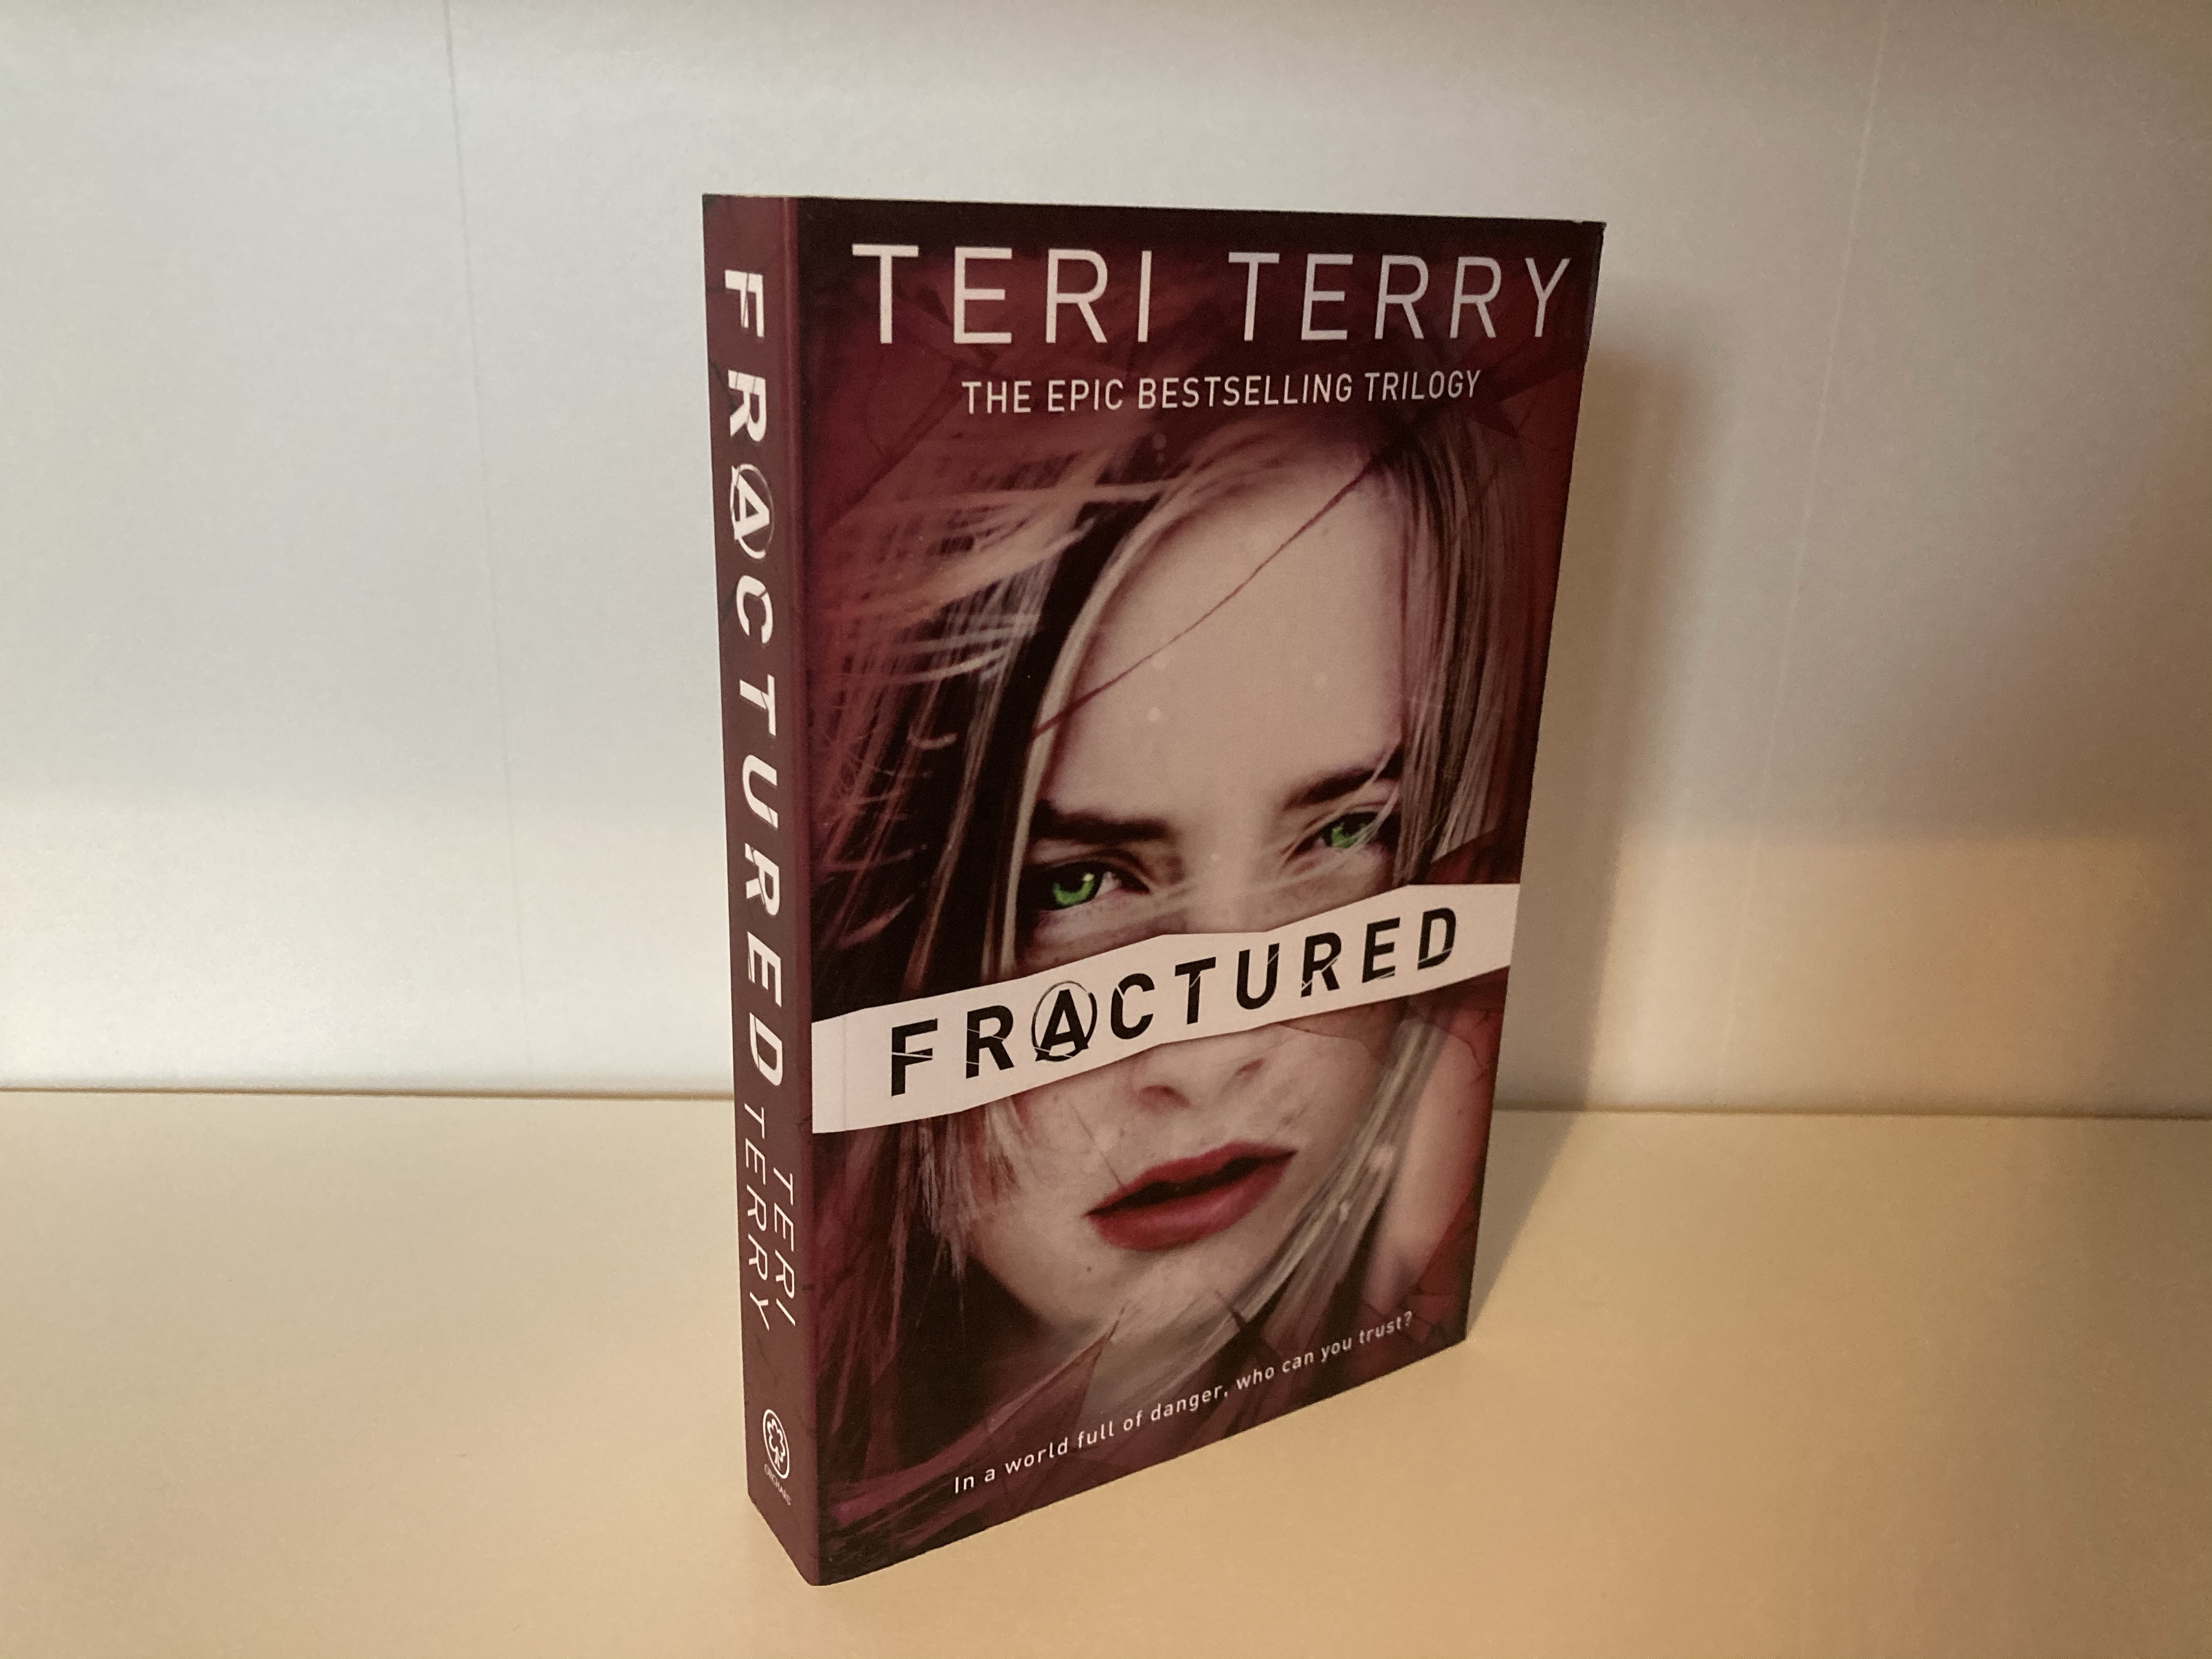 The cover of Fractured by Teri Terry